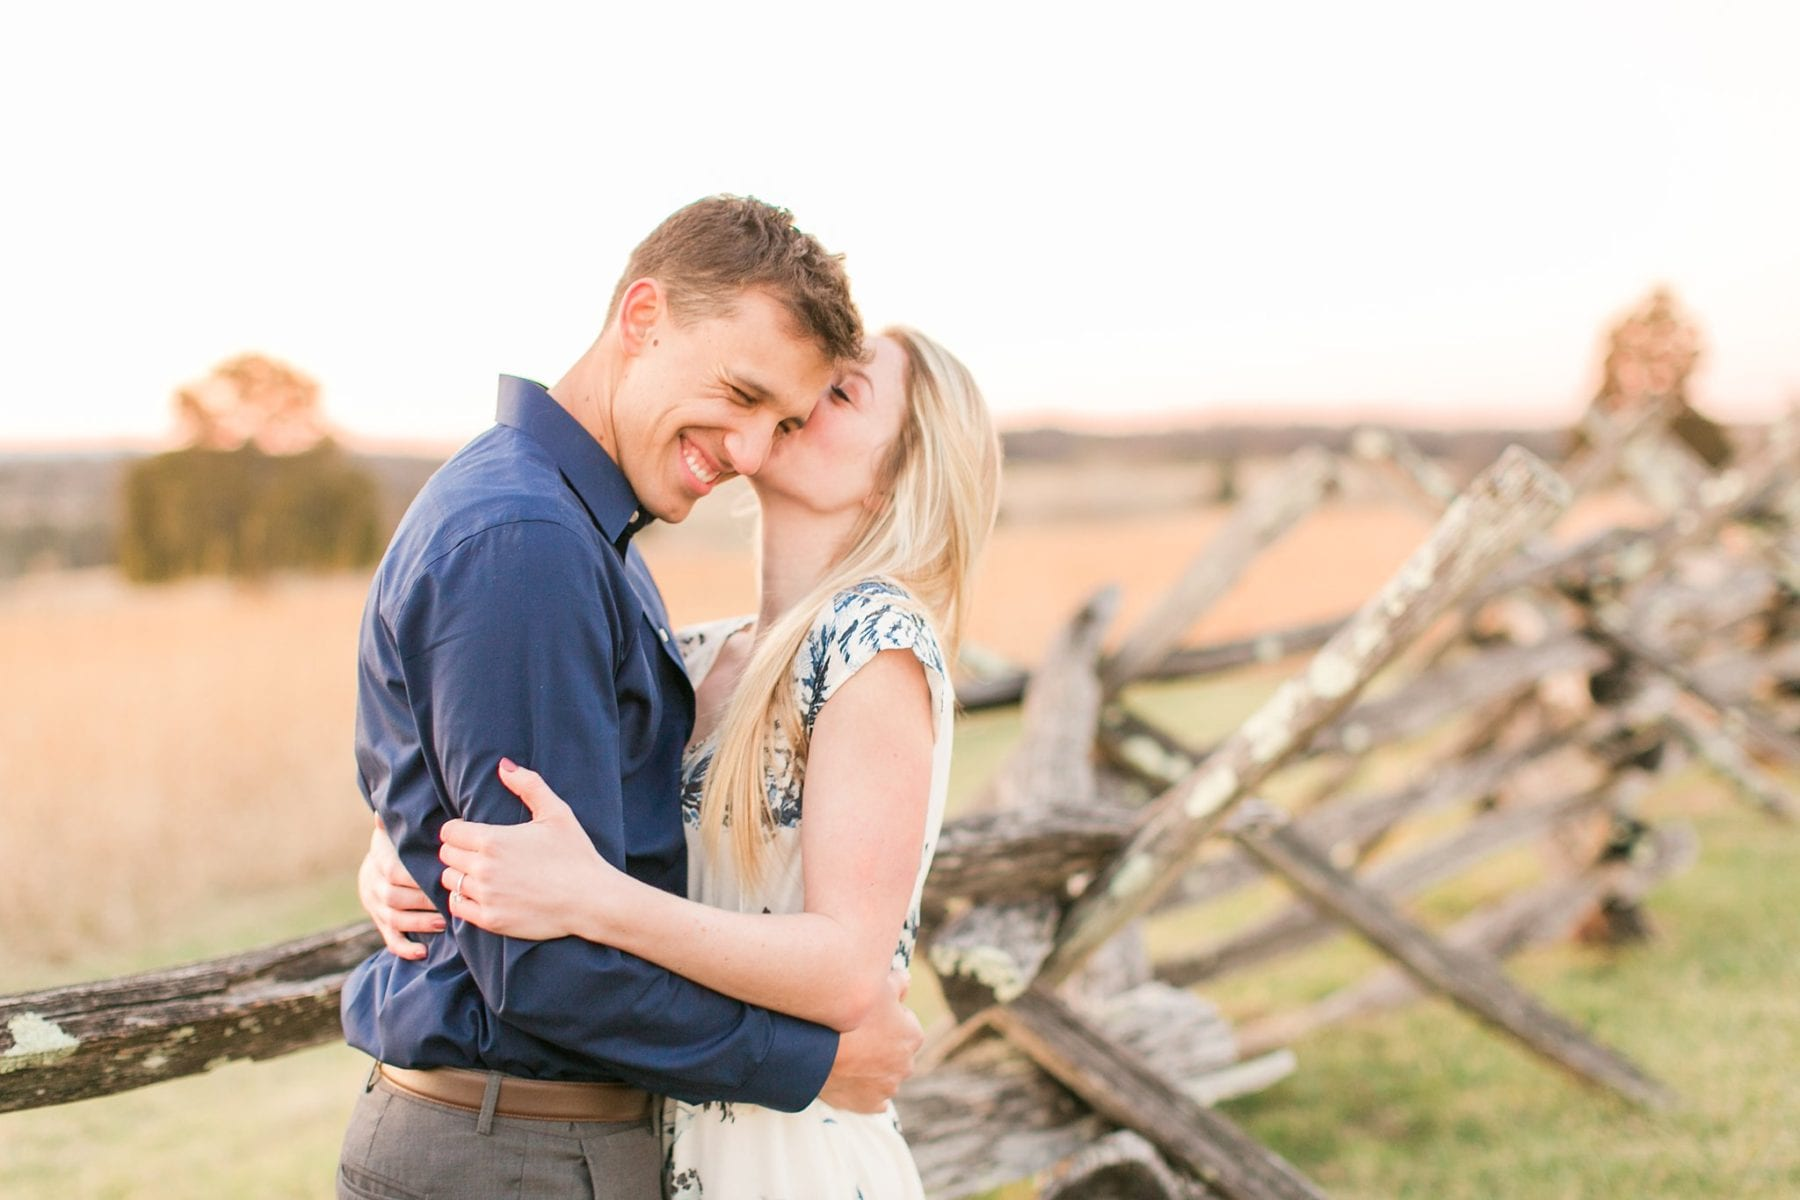 Manassas Battlefield Engagement Session Virginia Wedding Photographer Danielle & Charlie Megan Kelsey Photography-6365.jpg